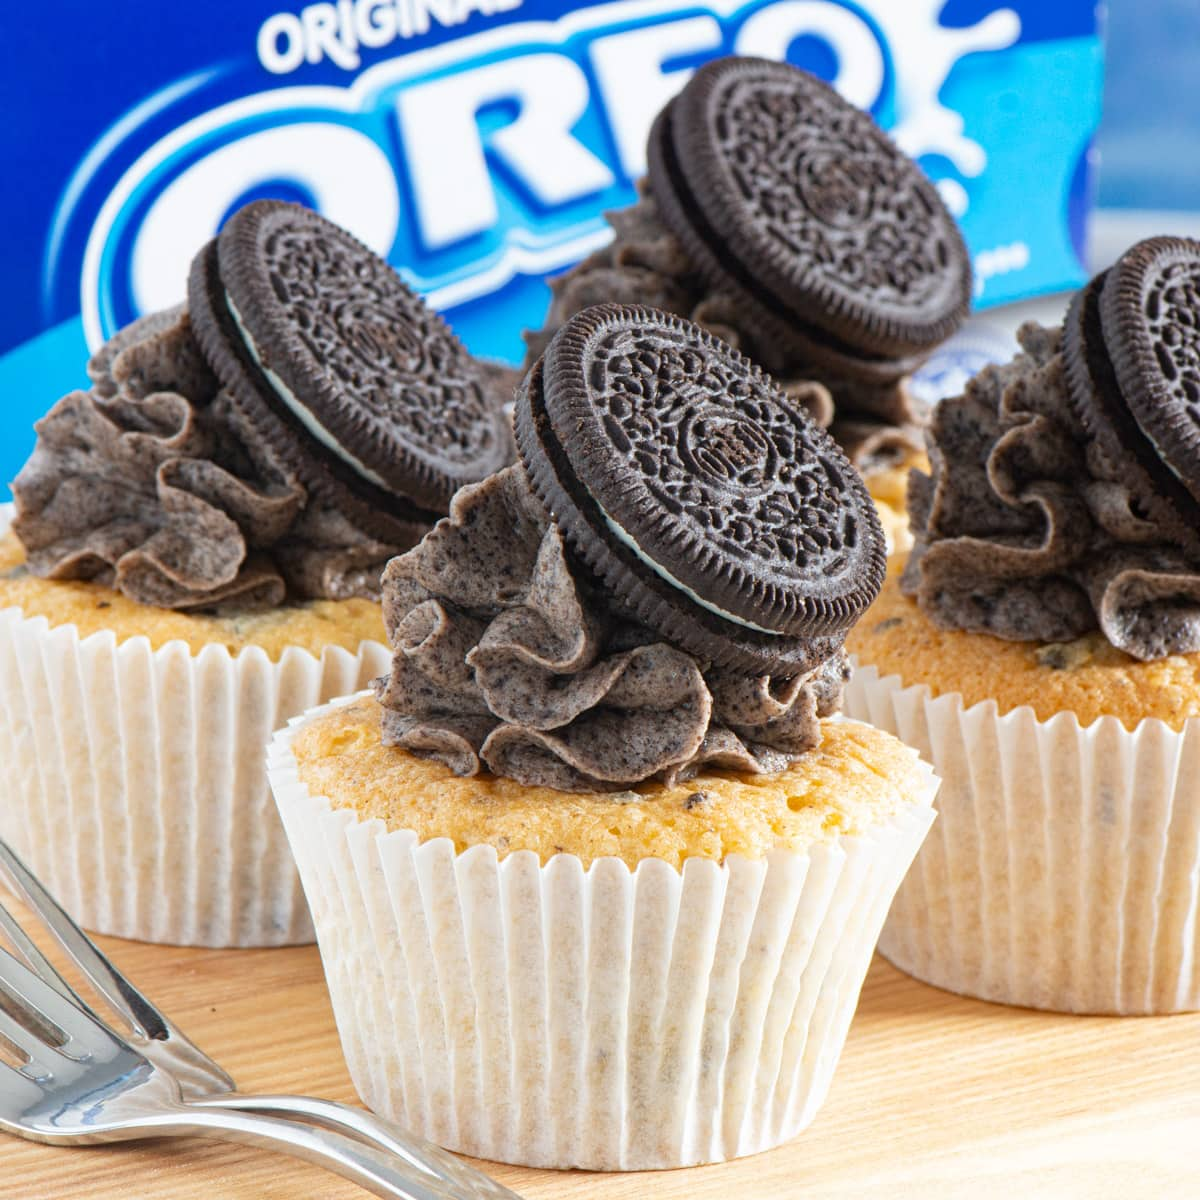 Oreo cupcakes on a wooden board